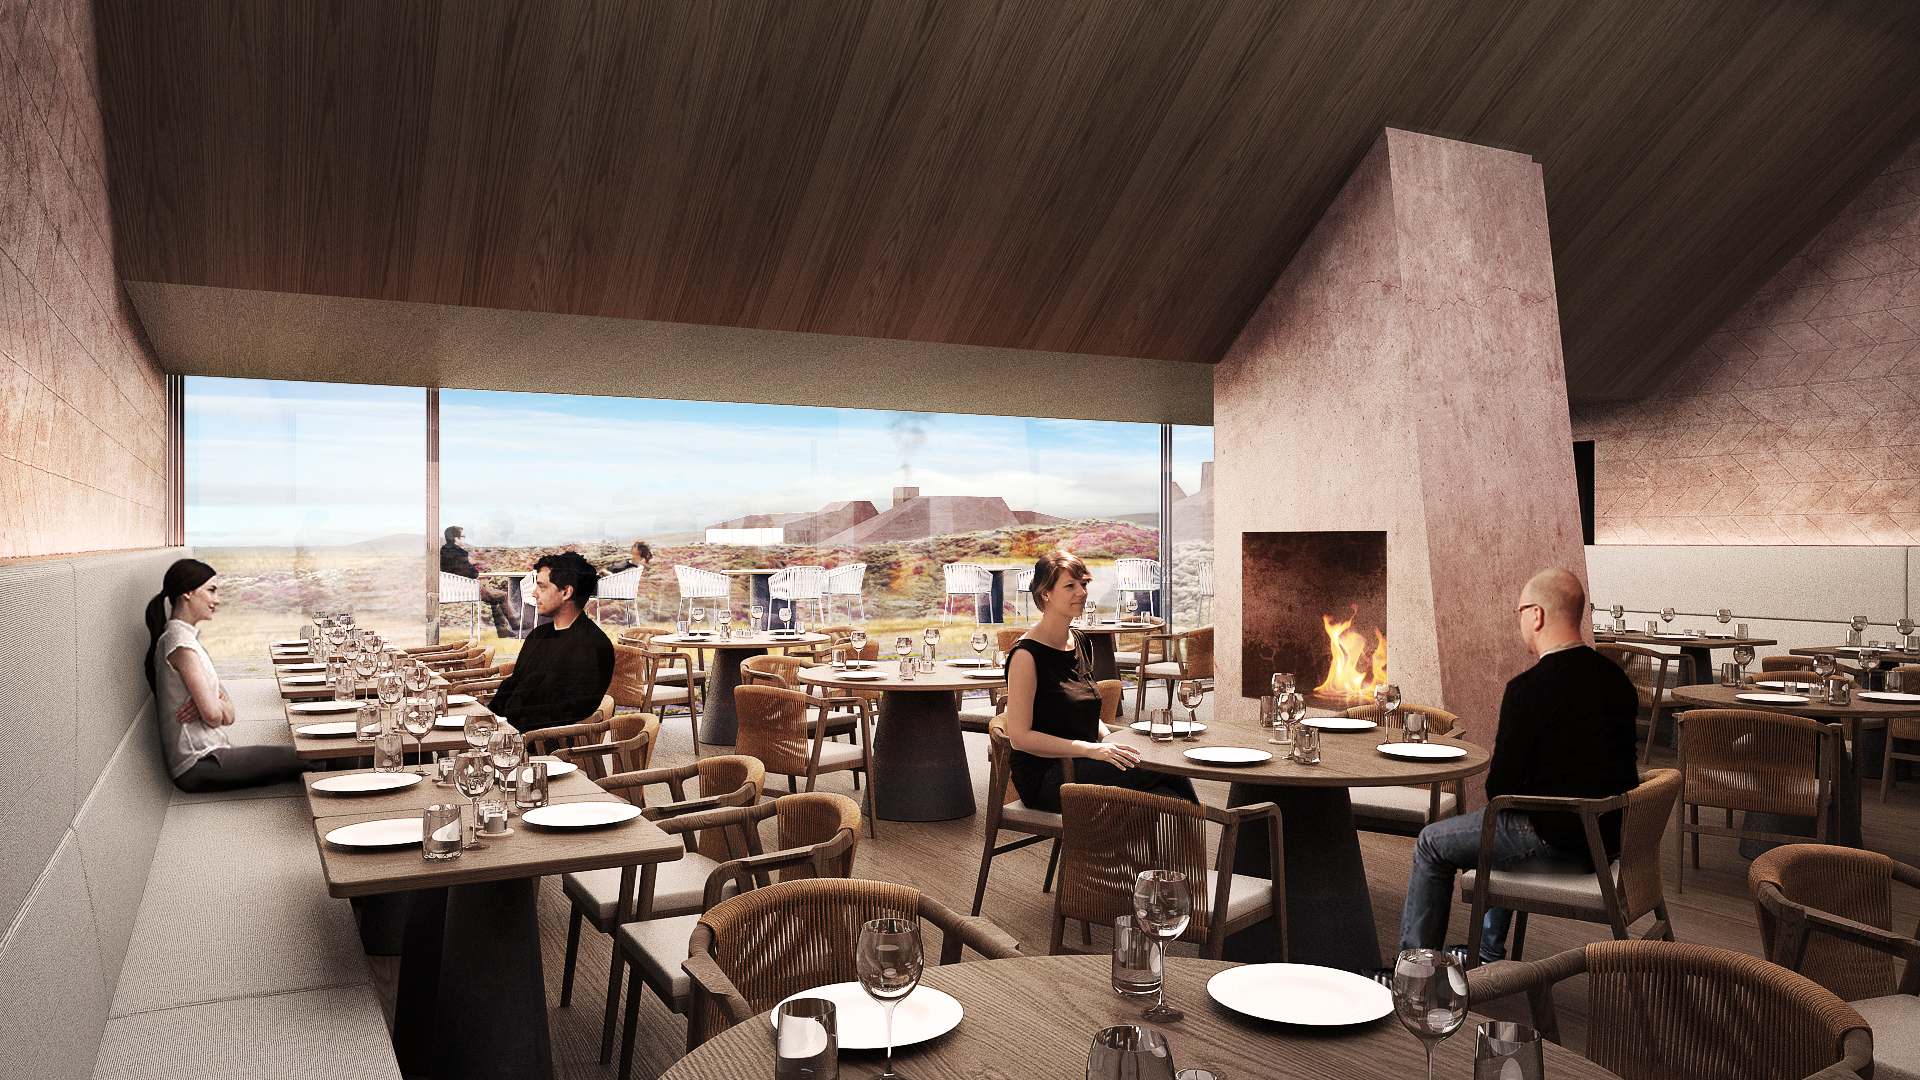 Restaurant area of the Red Mountain Resort characterized by an elegant glass wall and river stone